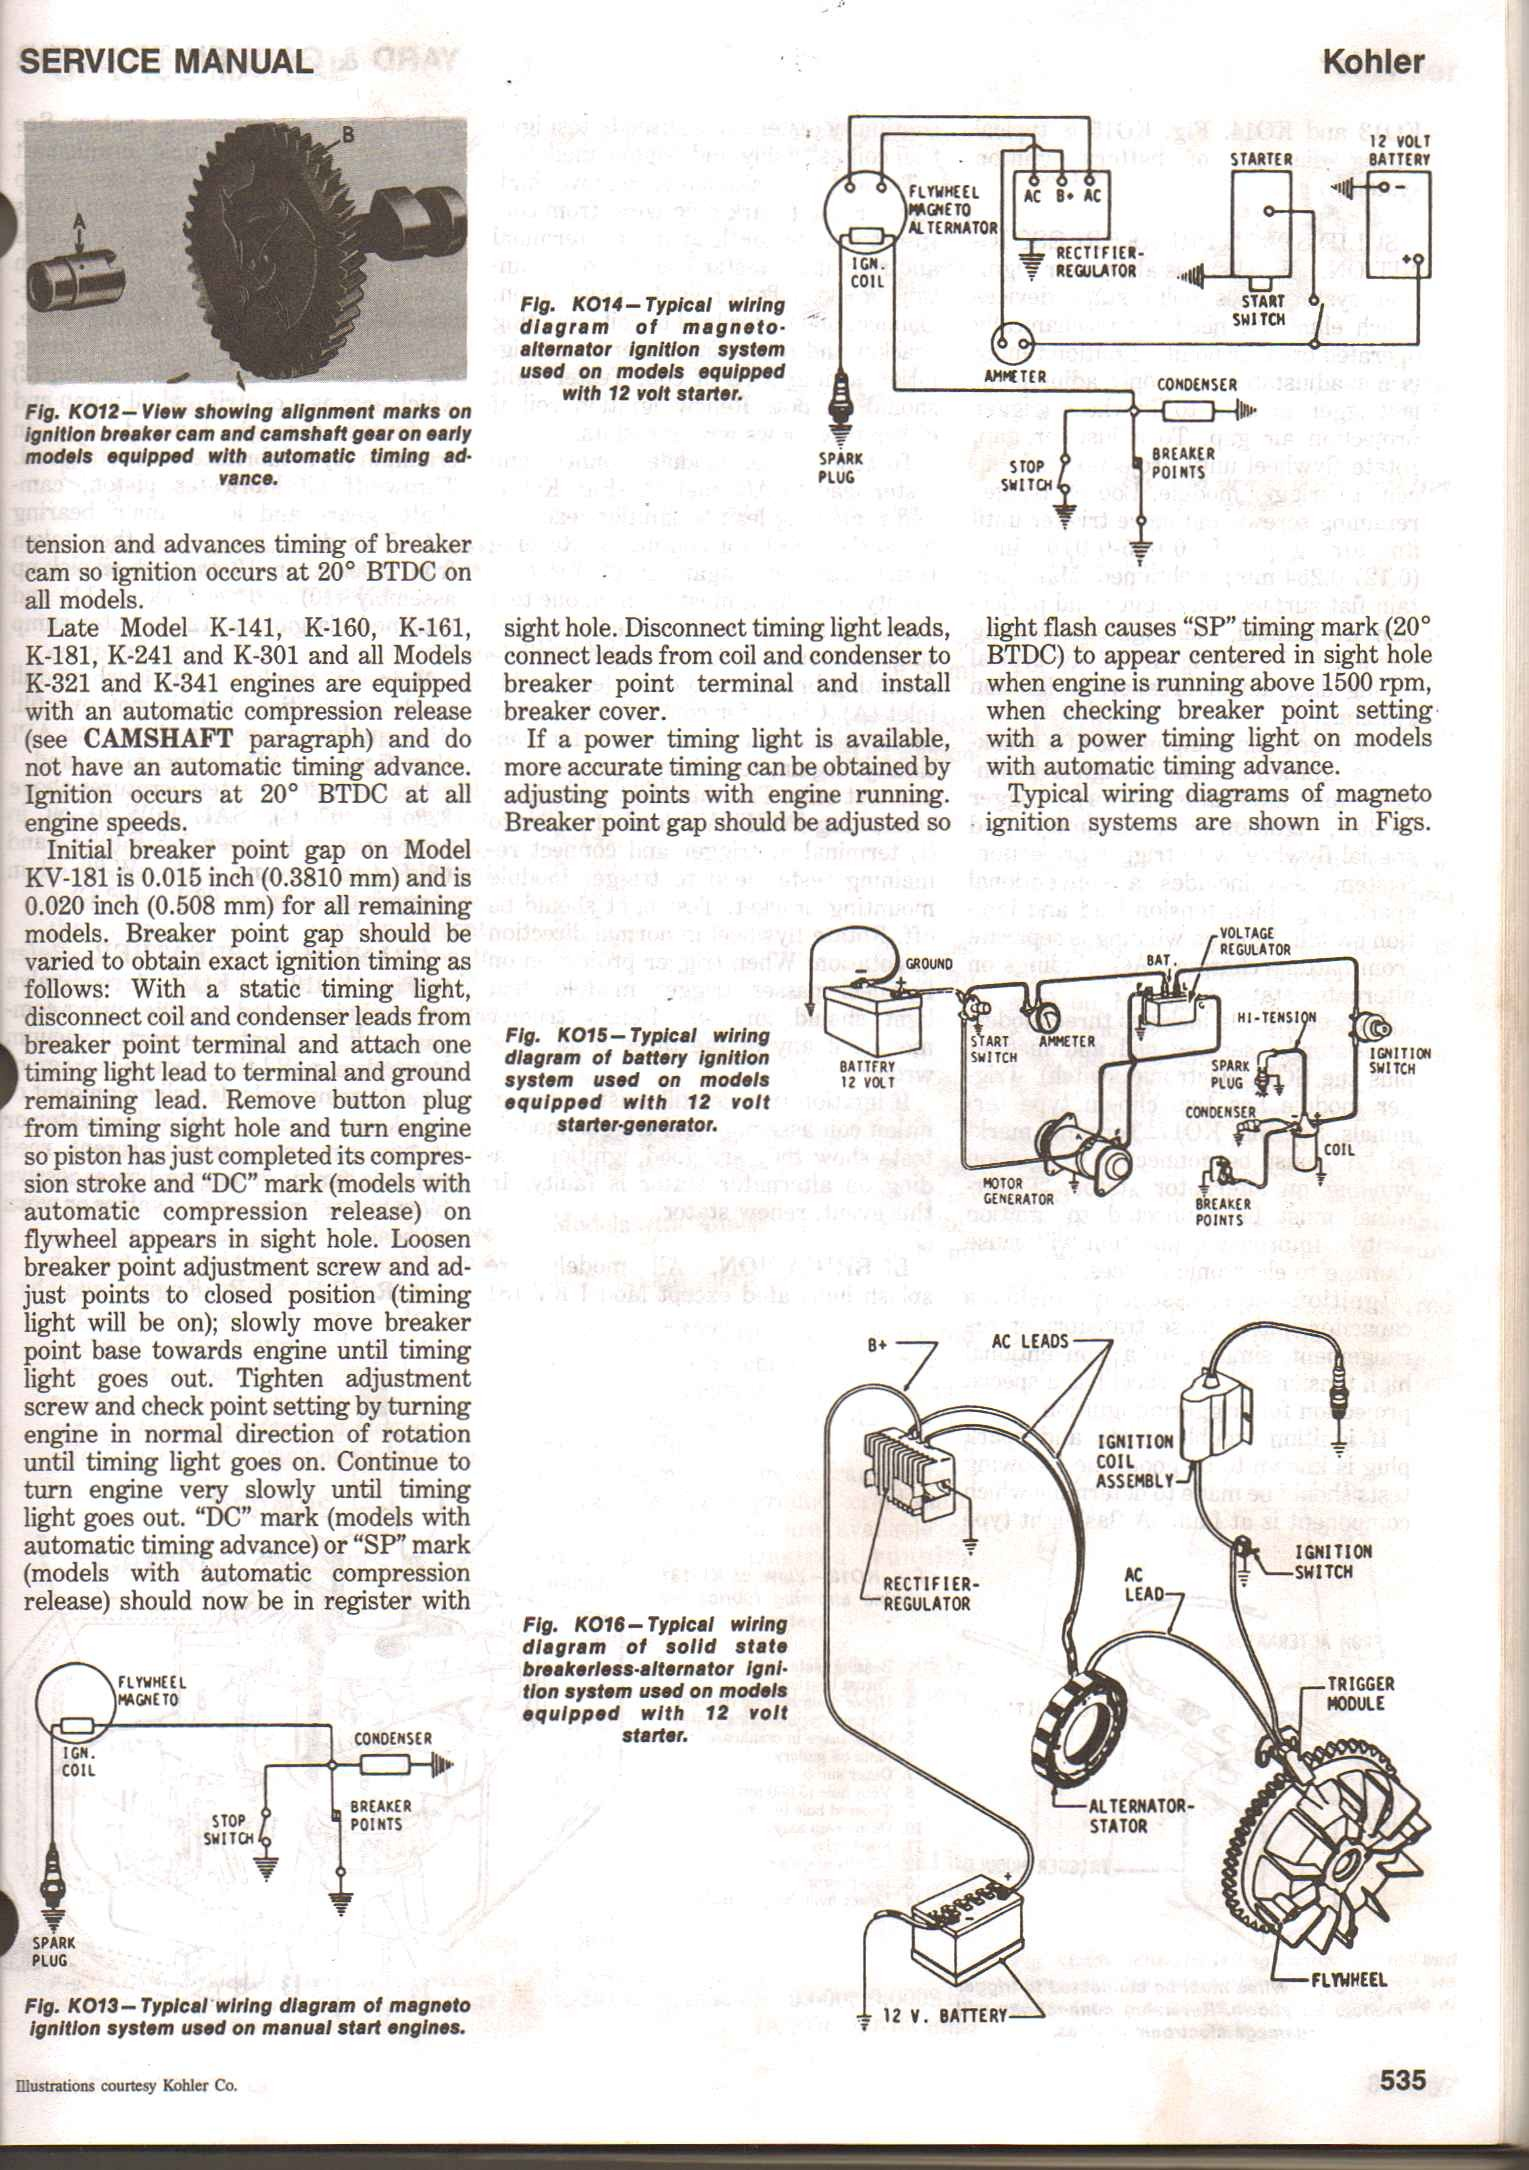 Kohler K301s Engine Parts Diagrams K301 Diagram New I Have A That M Working On Noticed